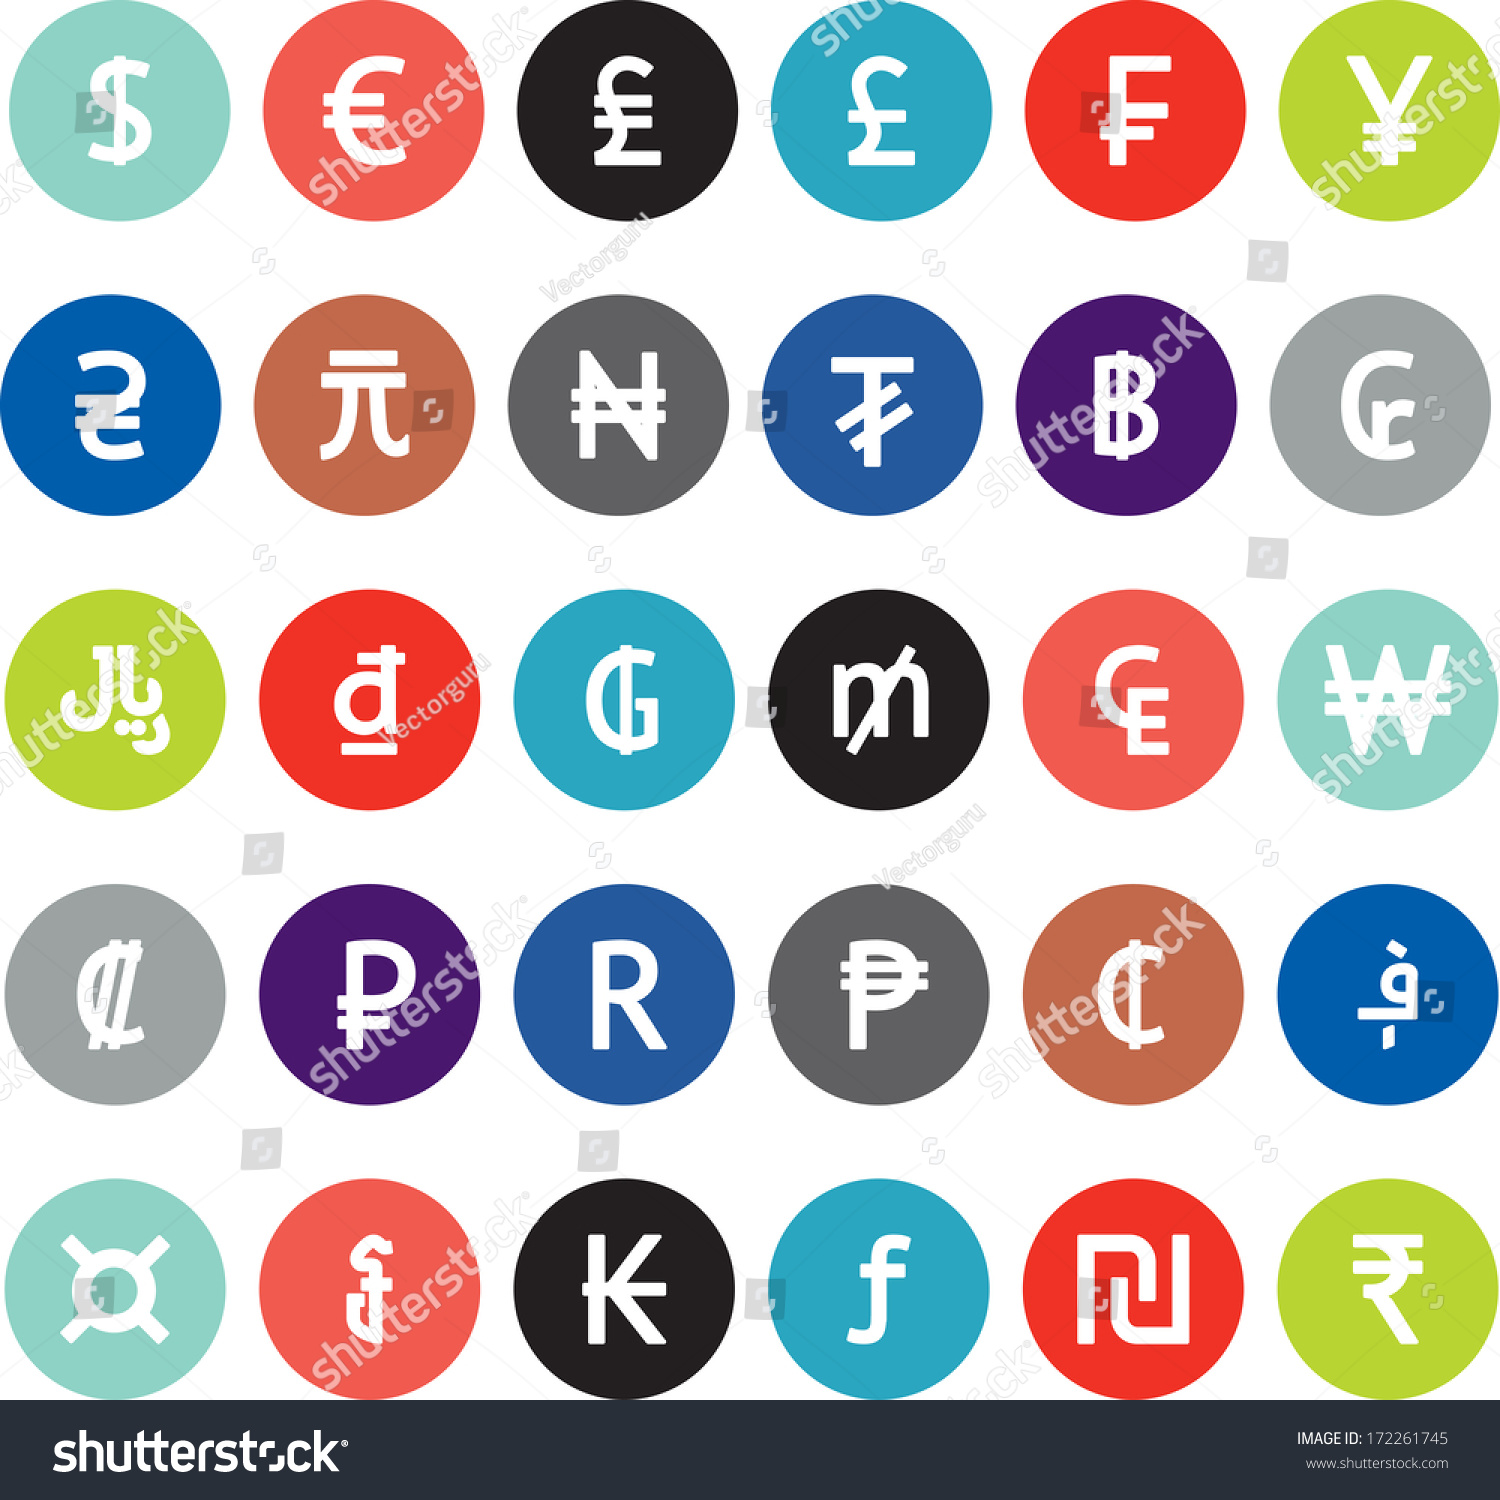 Royalty Free Vector Currency Symbols World Money 172261745 Stock